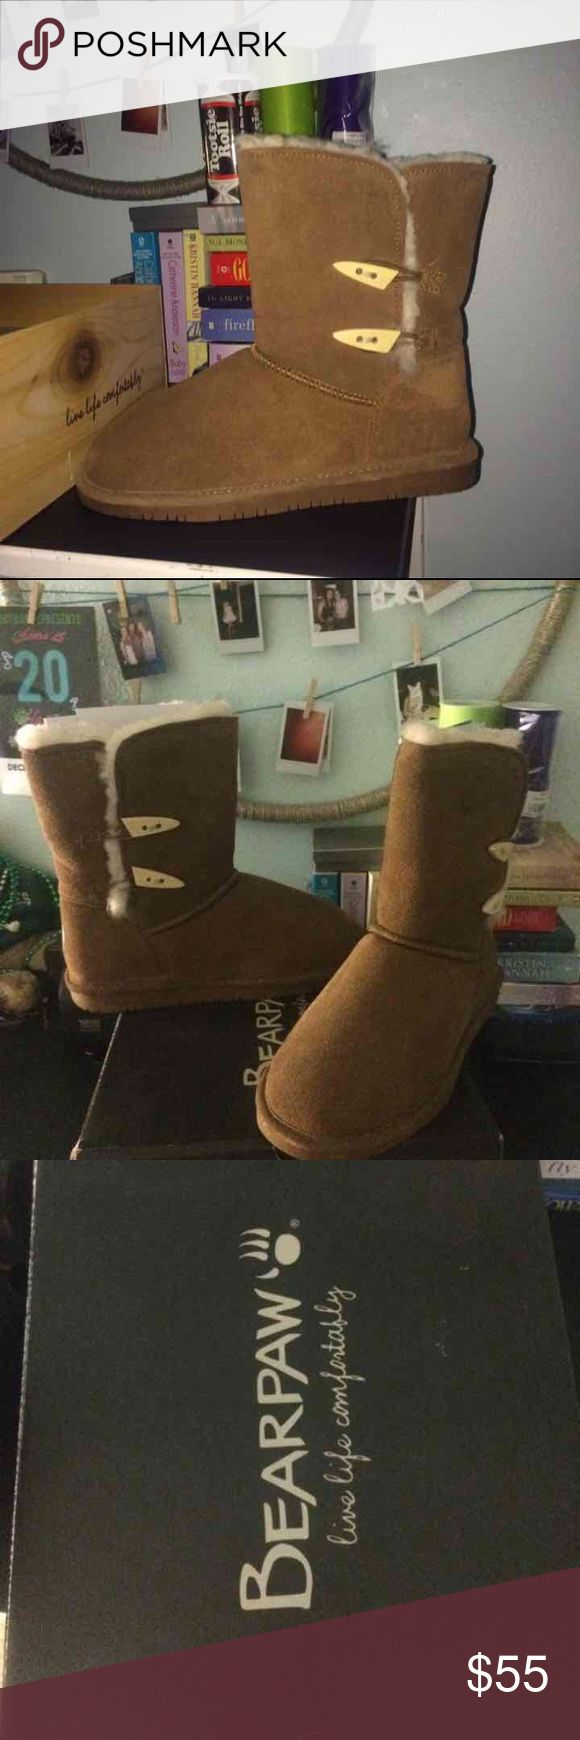 Bear paw Abigail boots Never been worn still in box BearPaw Shoes